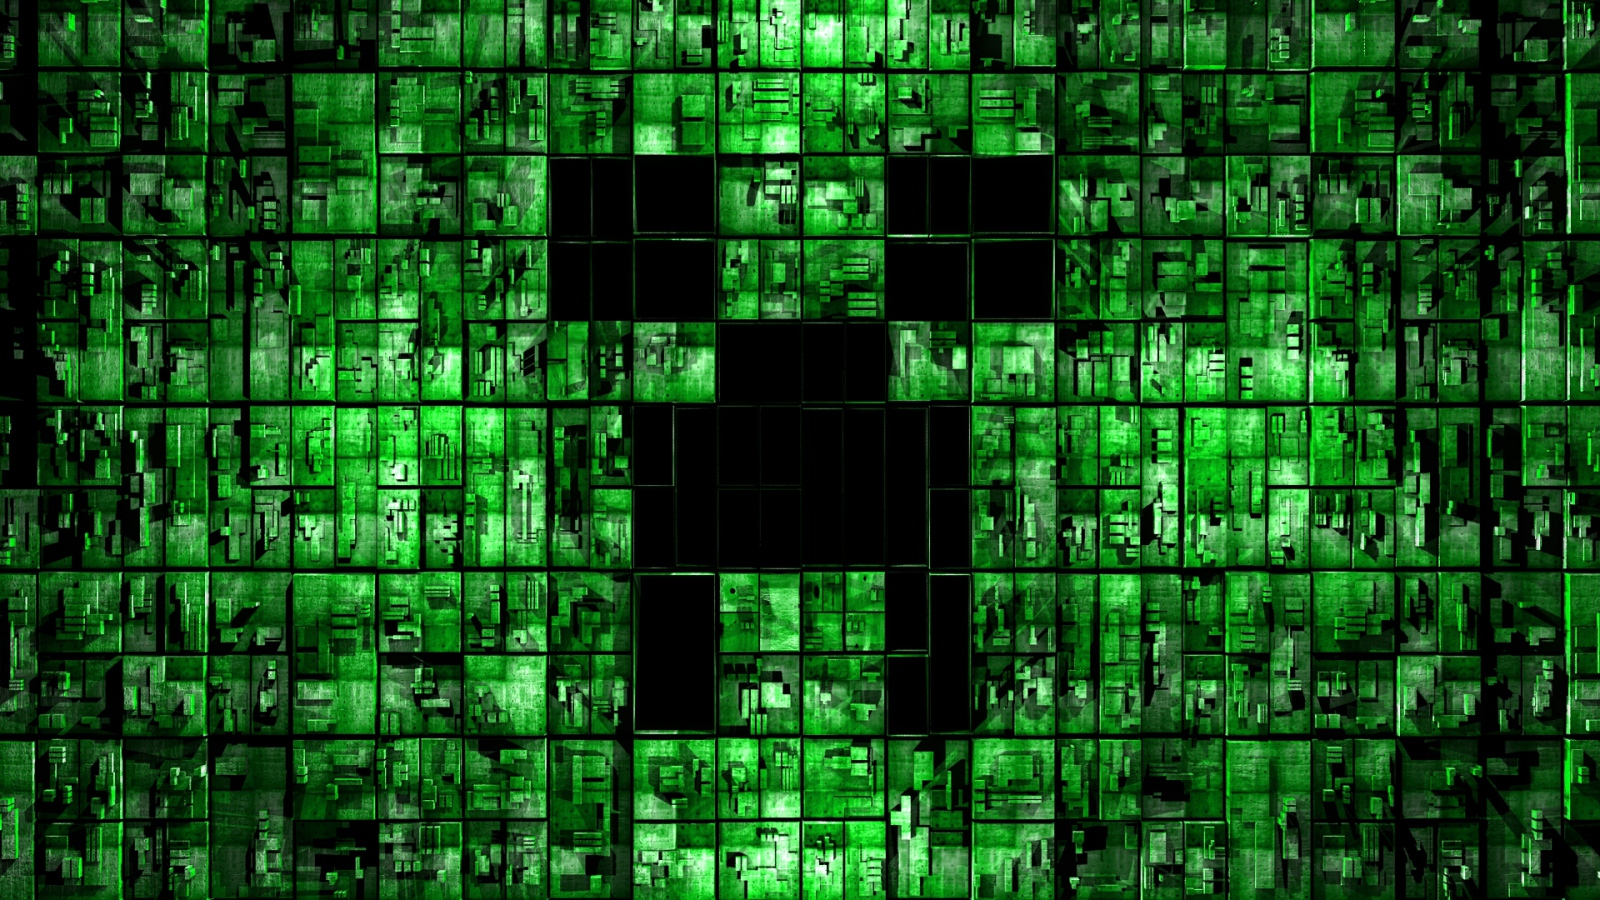 Minecraft Images Creeper Hd Wallpaper And Background P Os